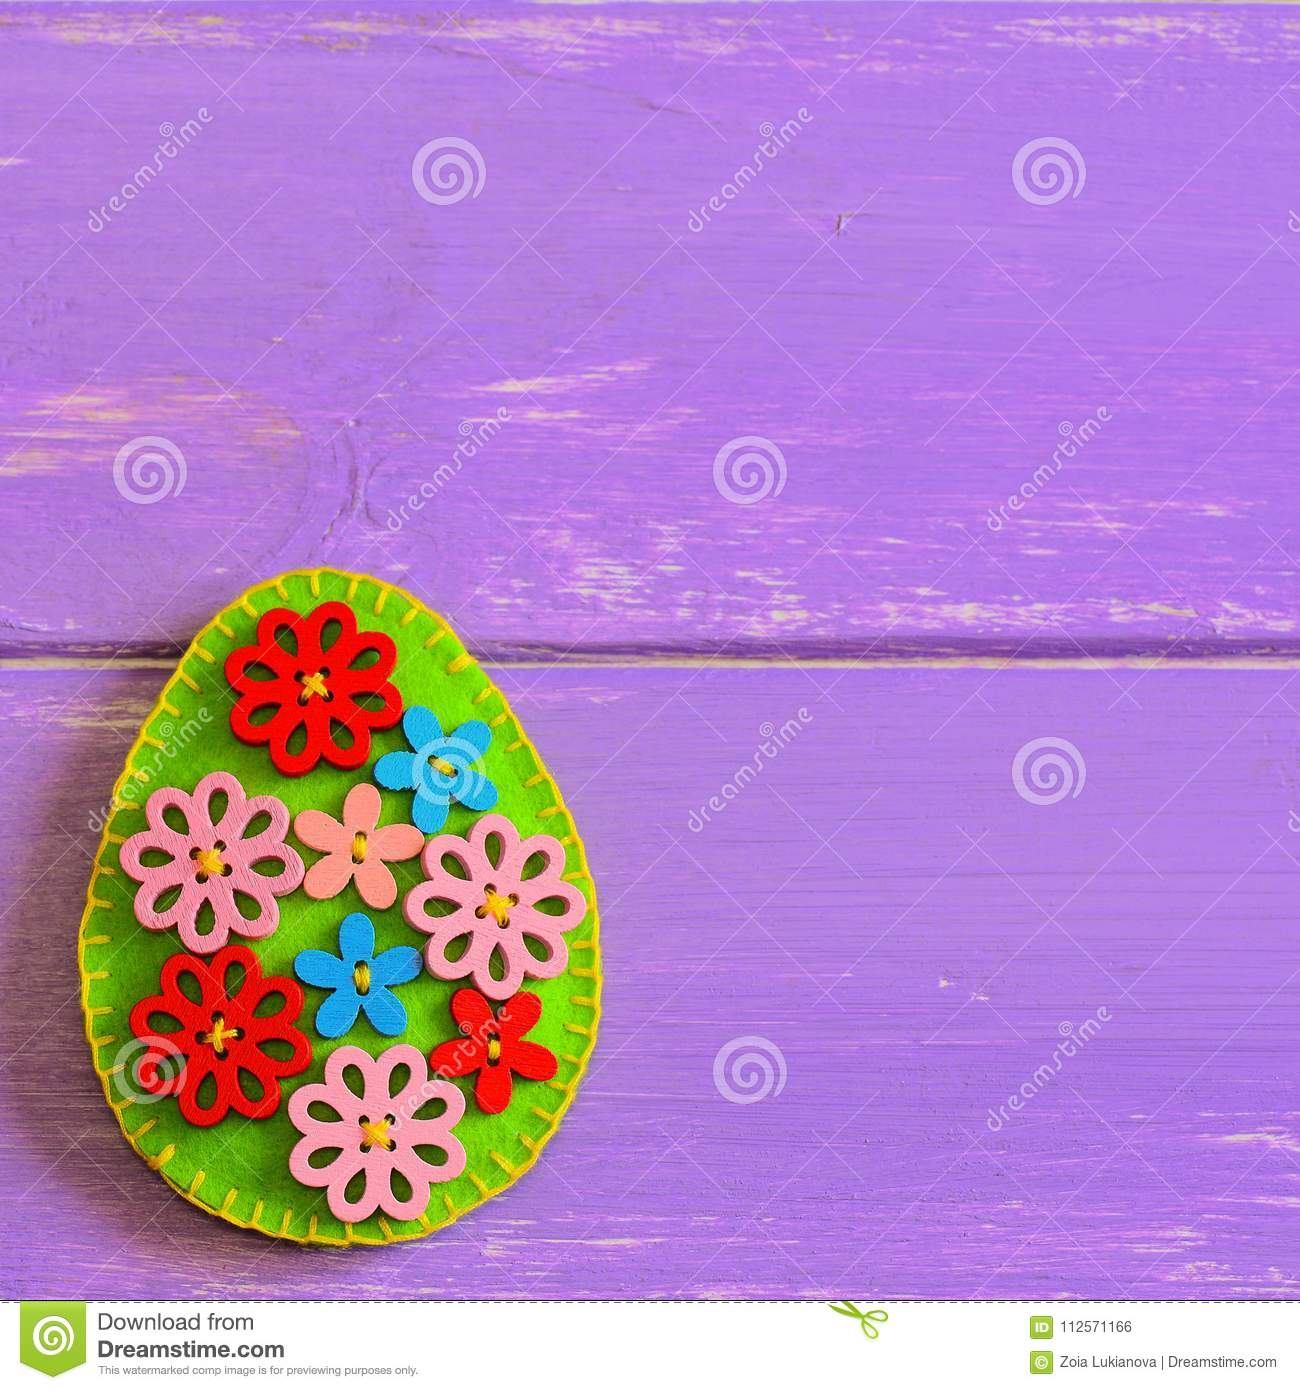 Beautiful Easter Egg With Wooden Flower Buttons Felt Easter Egg